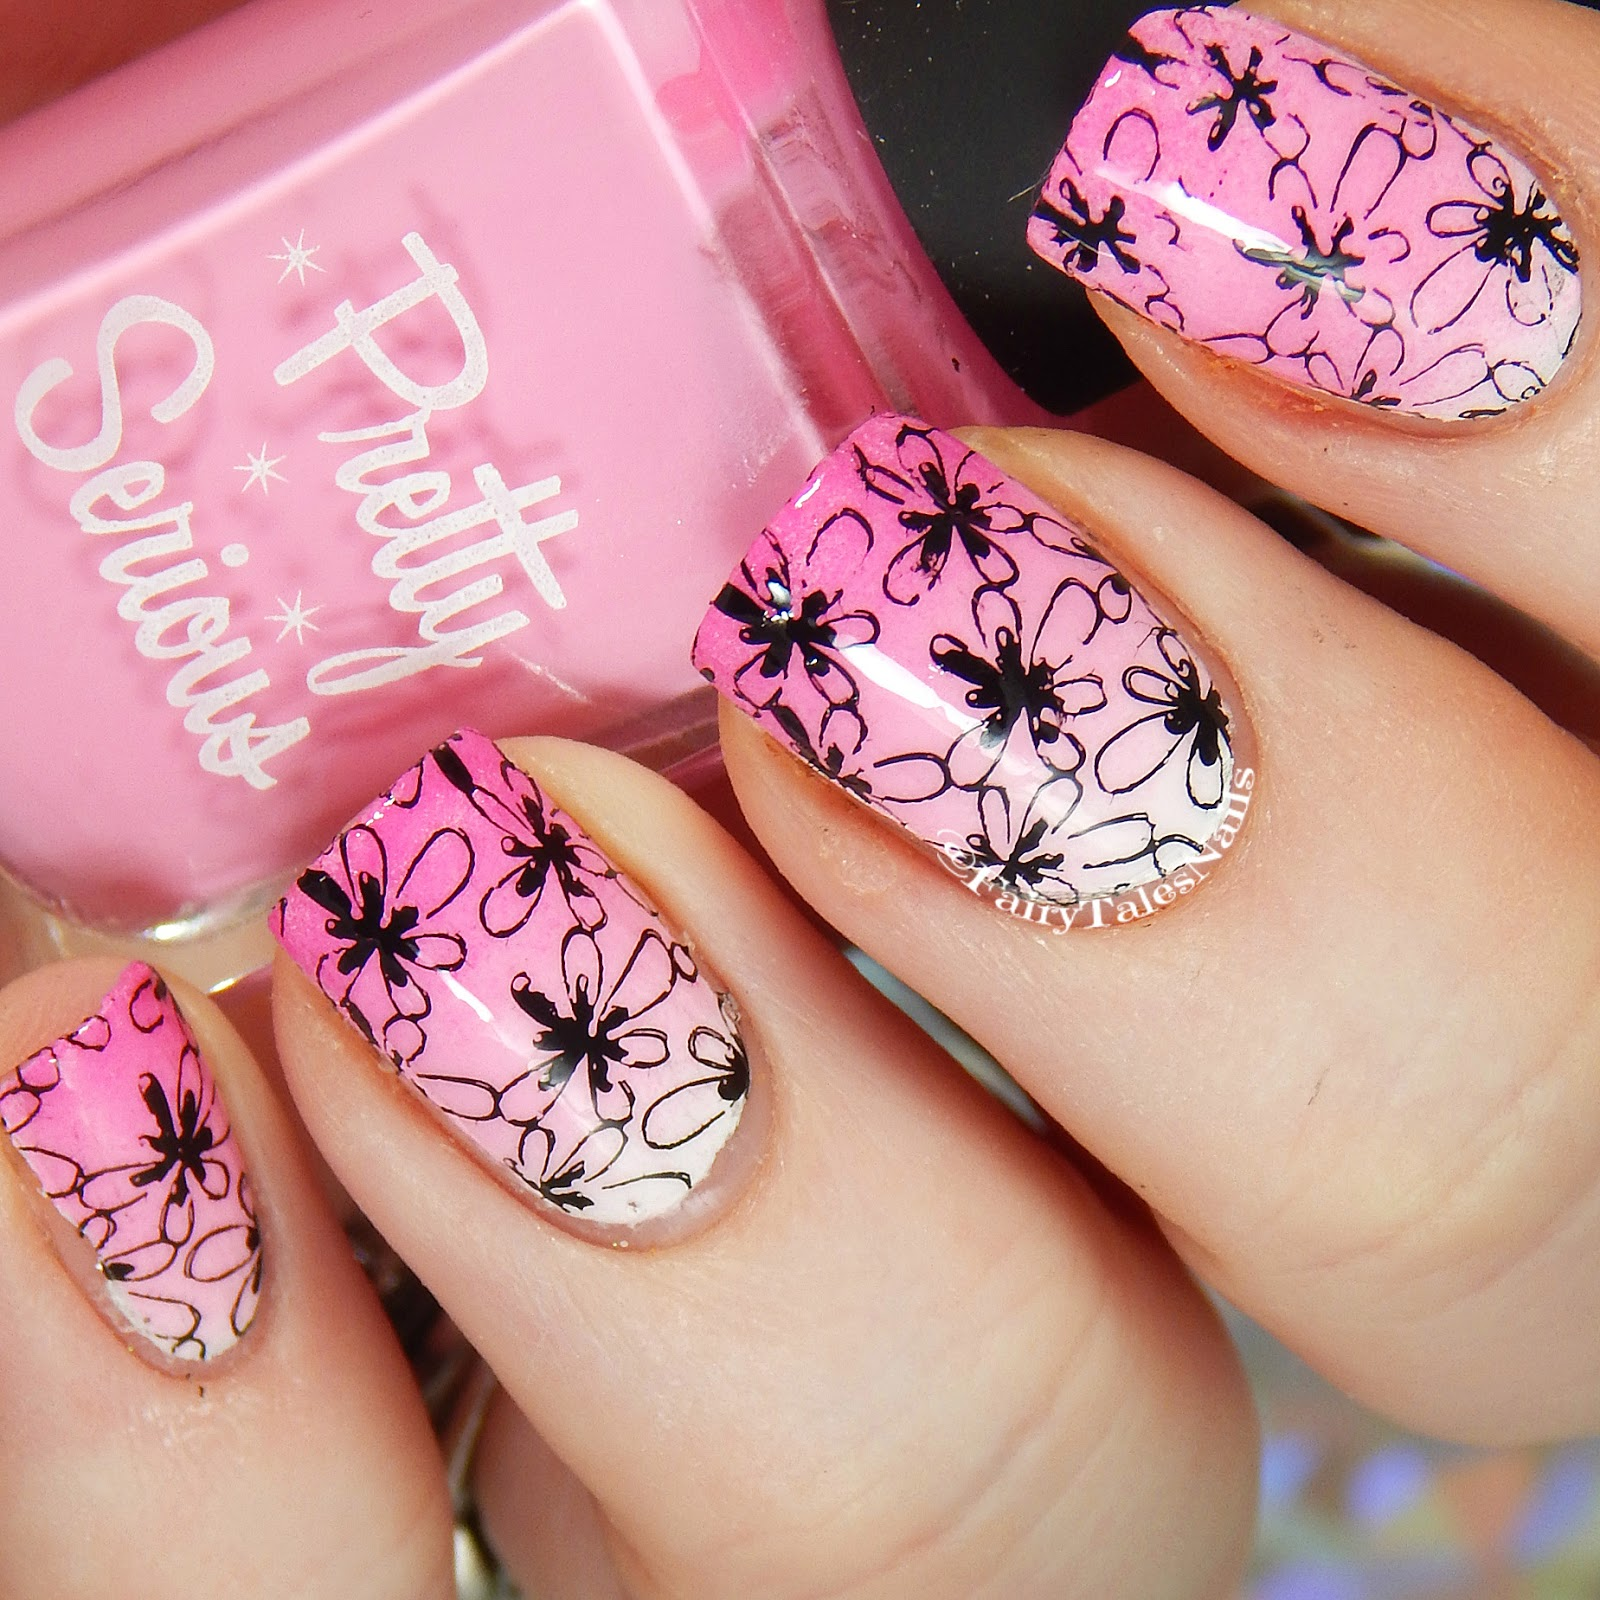 Fairytales Nails 26 Great Nail Art Ideas Pastel To Bold Gradient